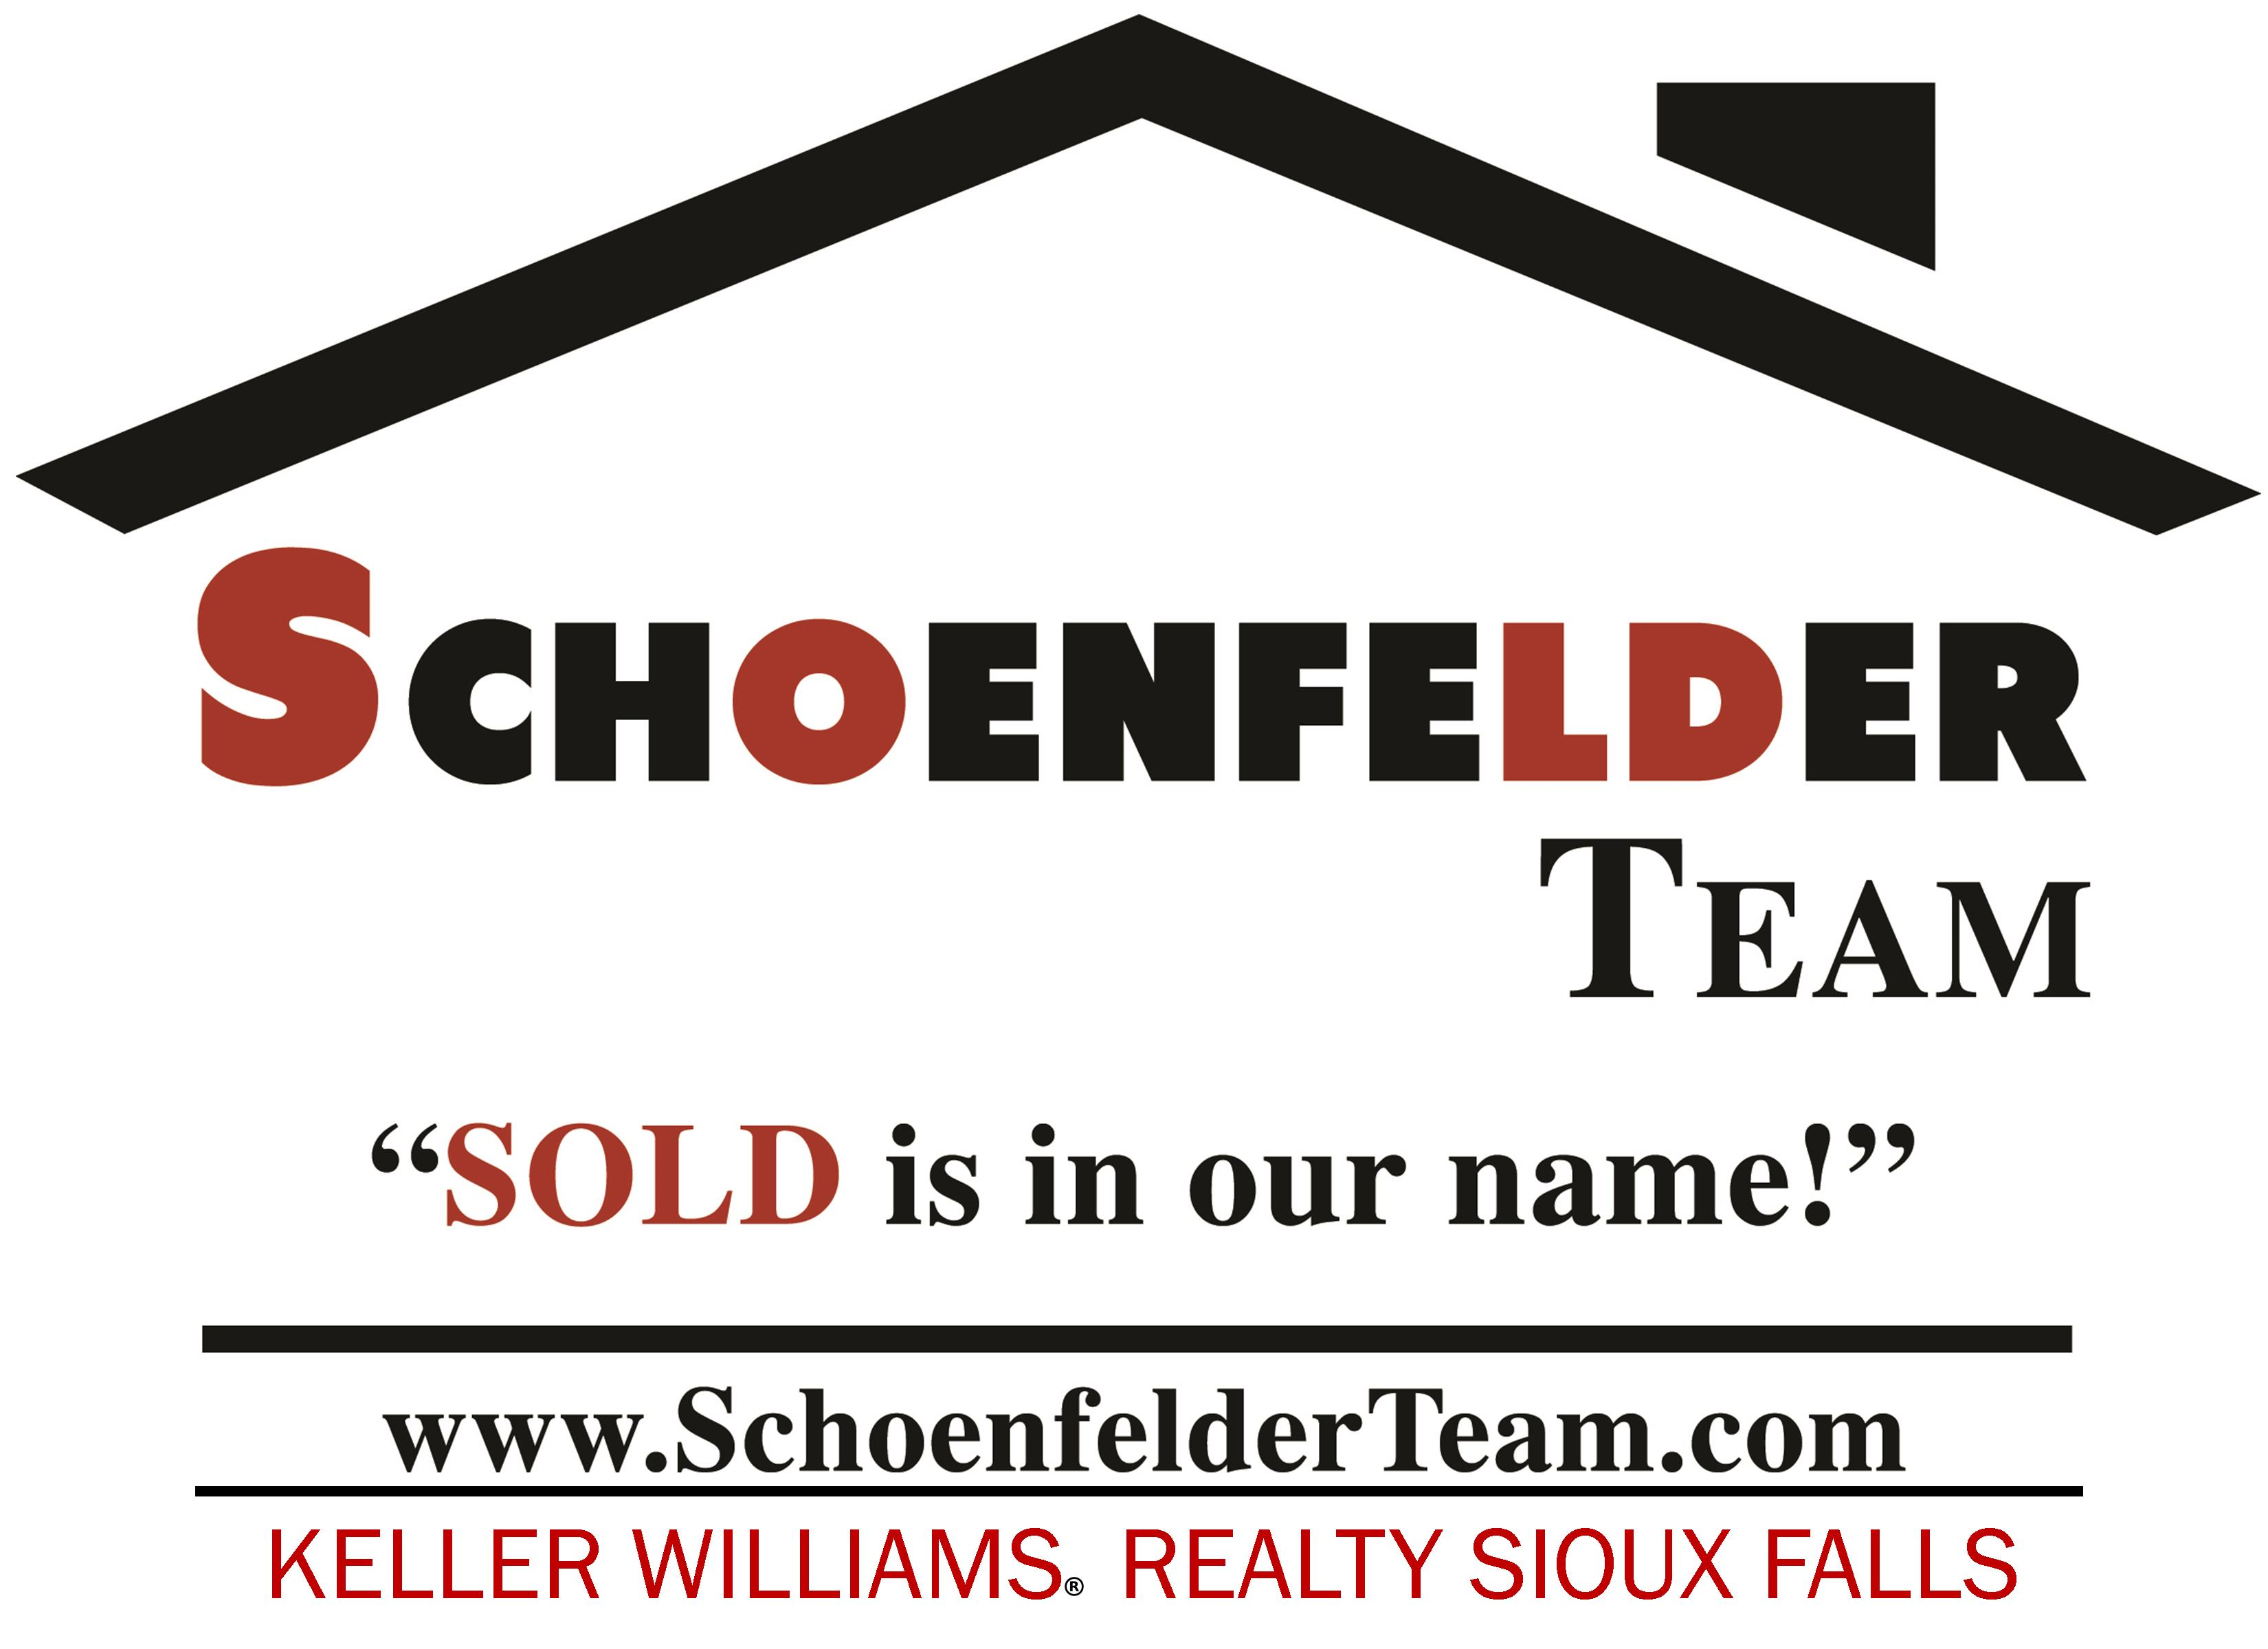 Schoenfelder Team, Keller Williams Realty Sioux Falls